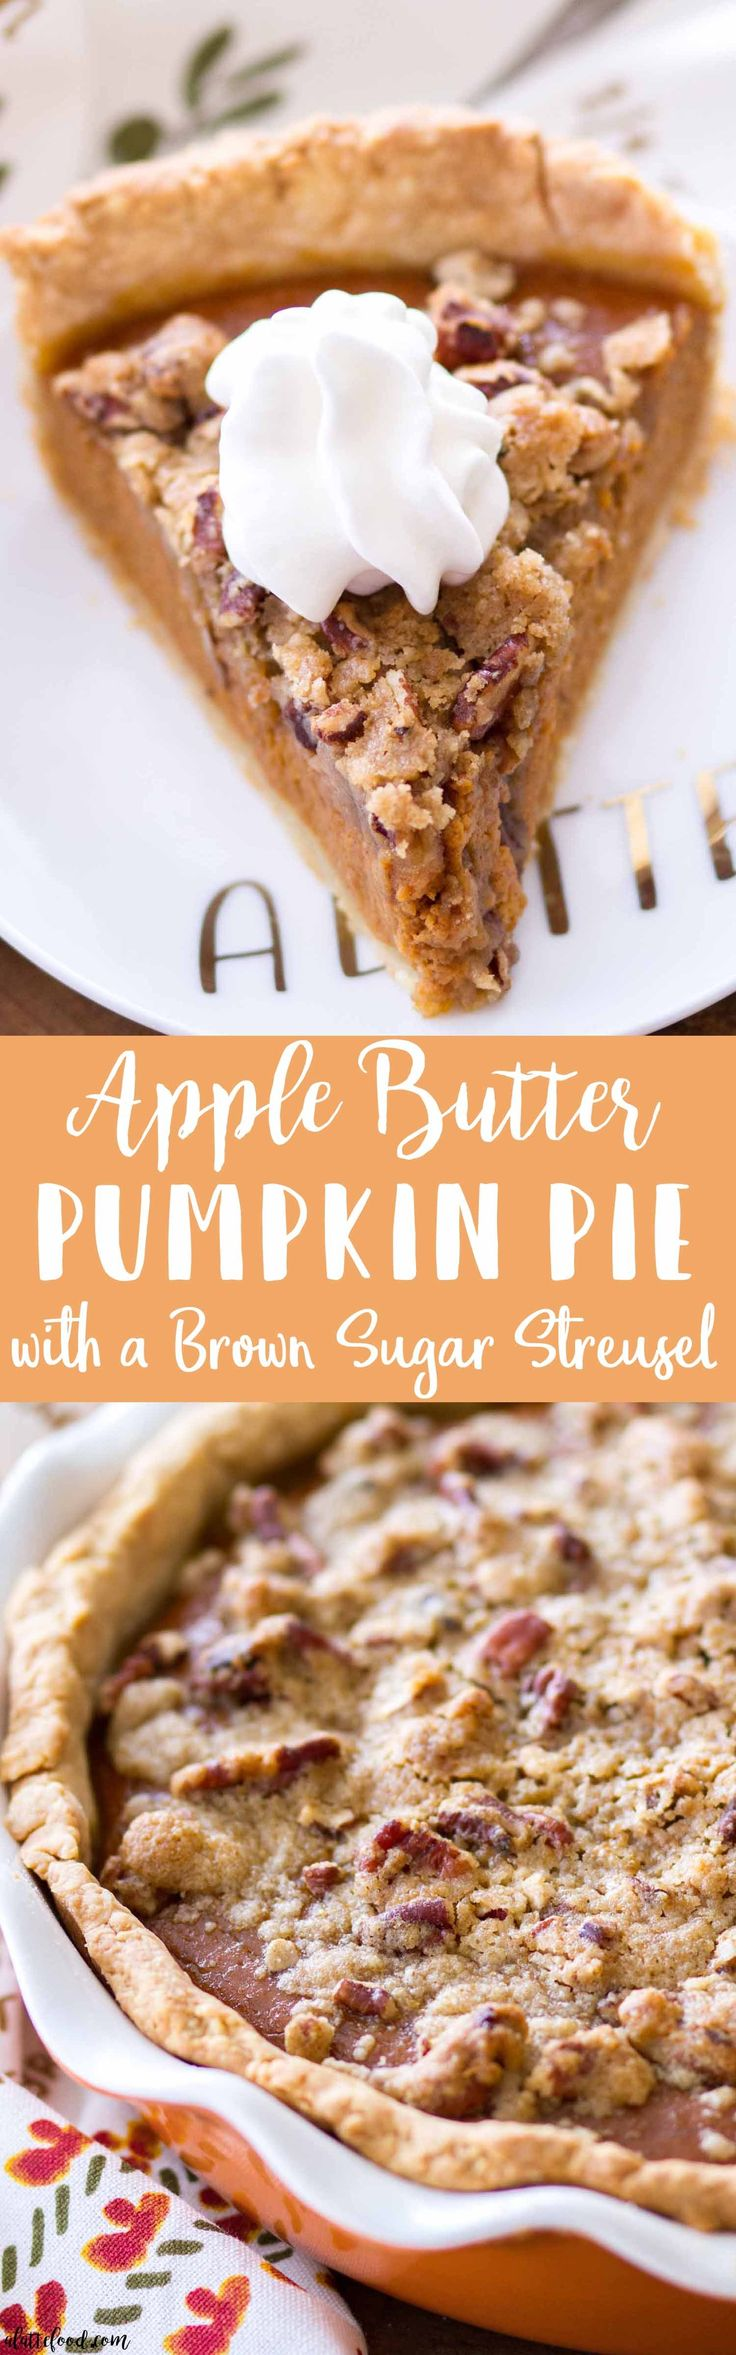 Apple Butter Pumpkin Pie with Brown Sugar Streusel. #fall #Thanksgiving #desserts